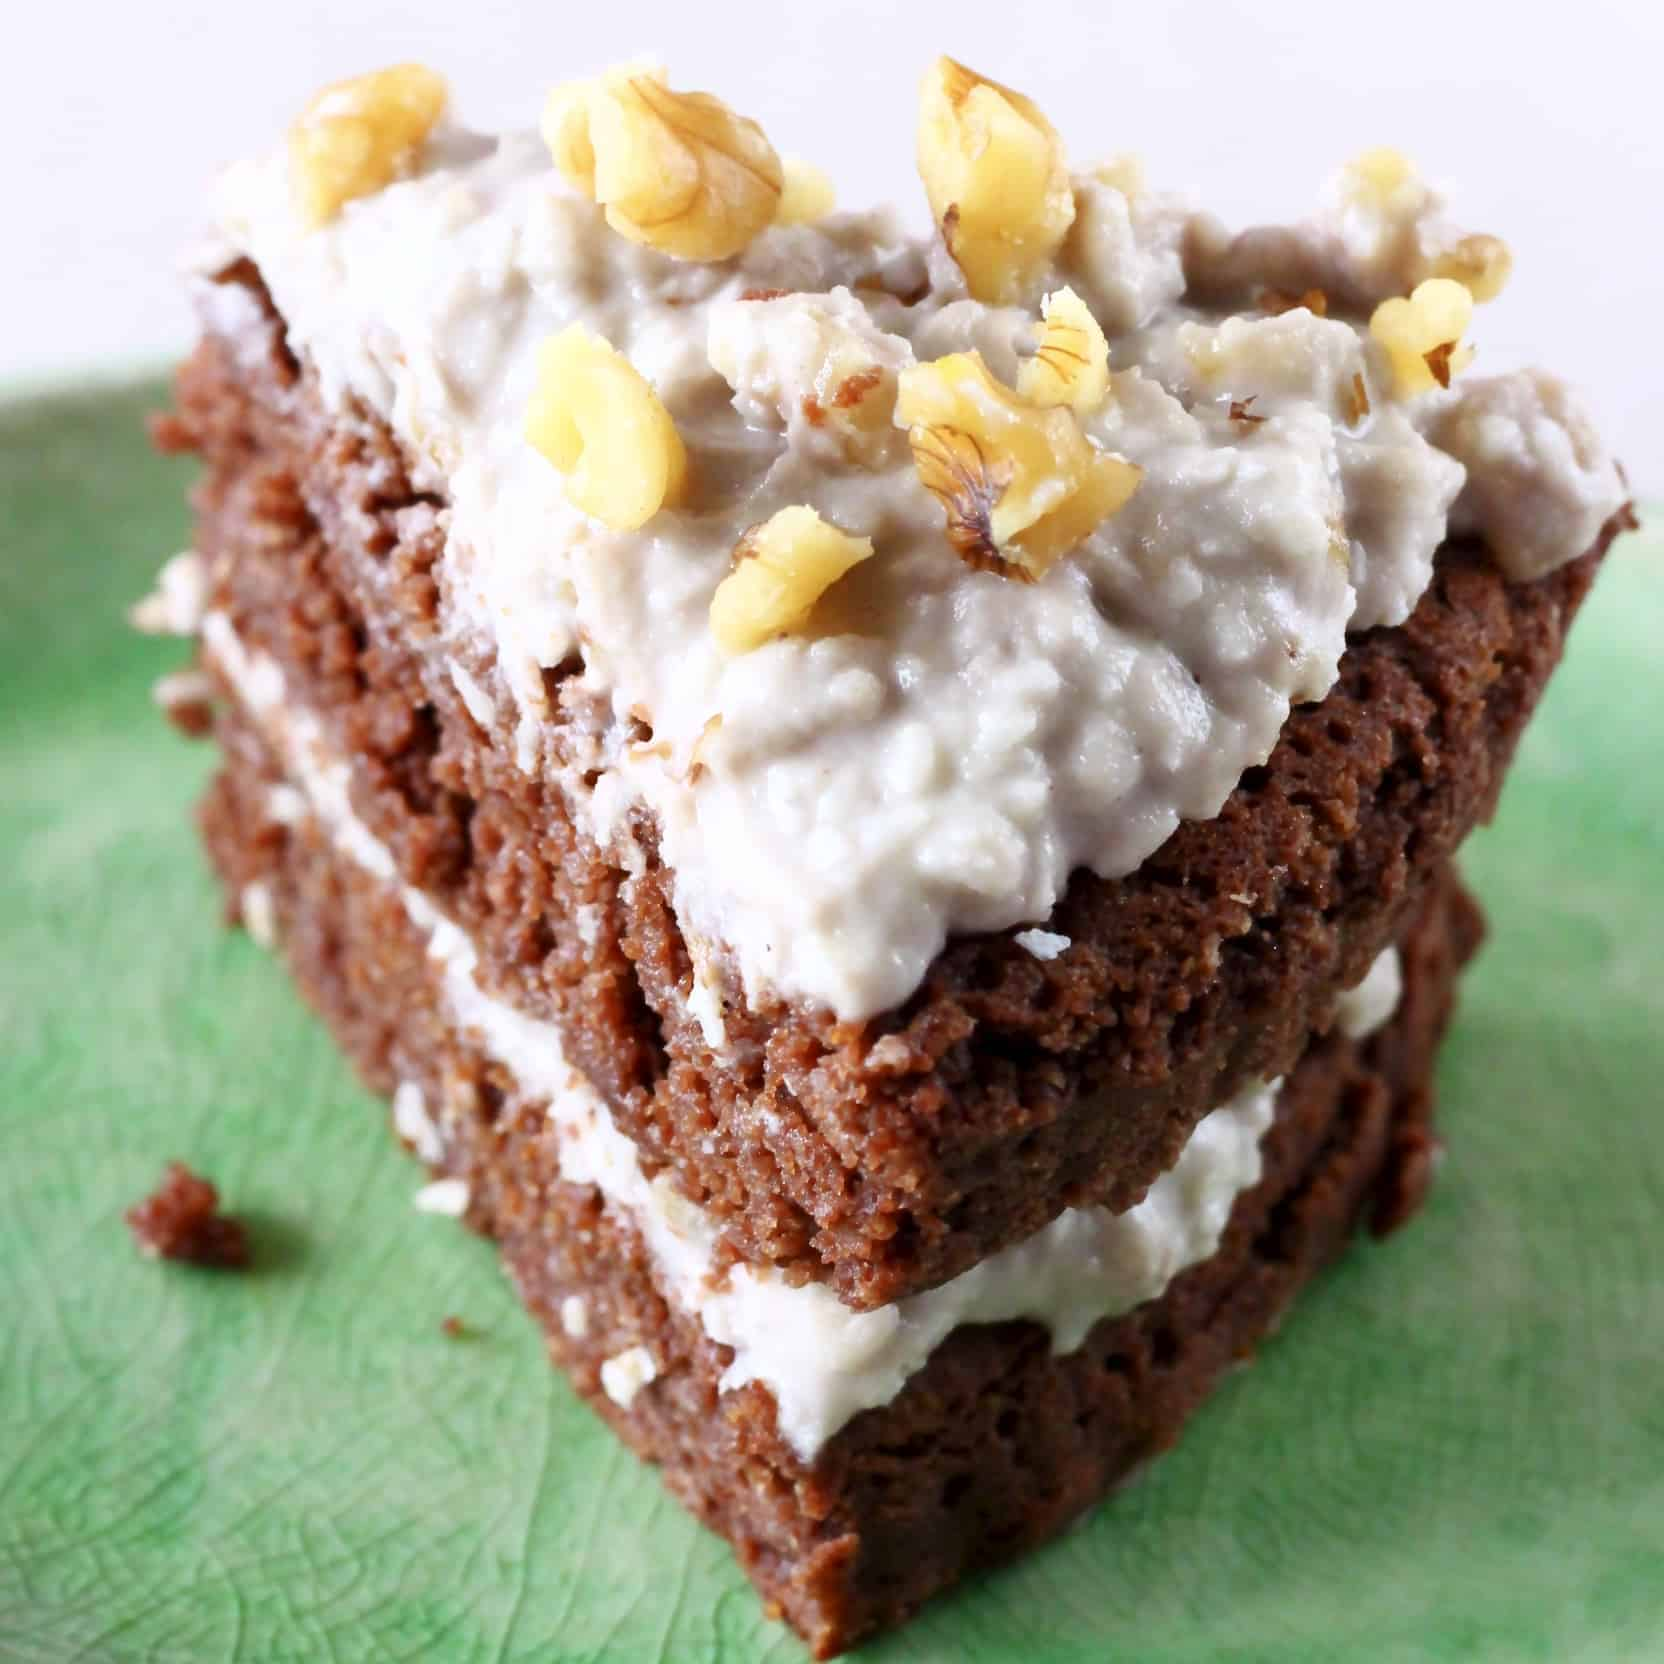 Gluten-Free Vegan German Chocolate Cake